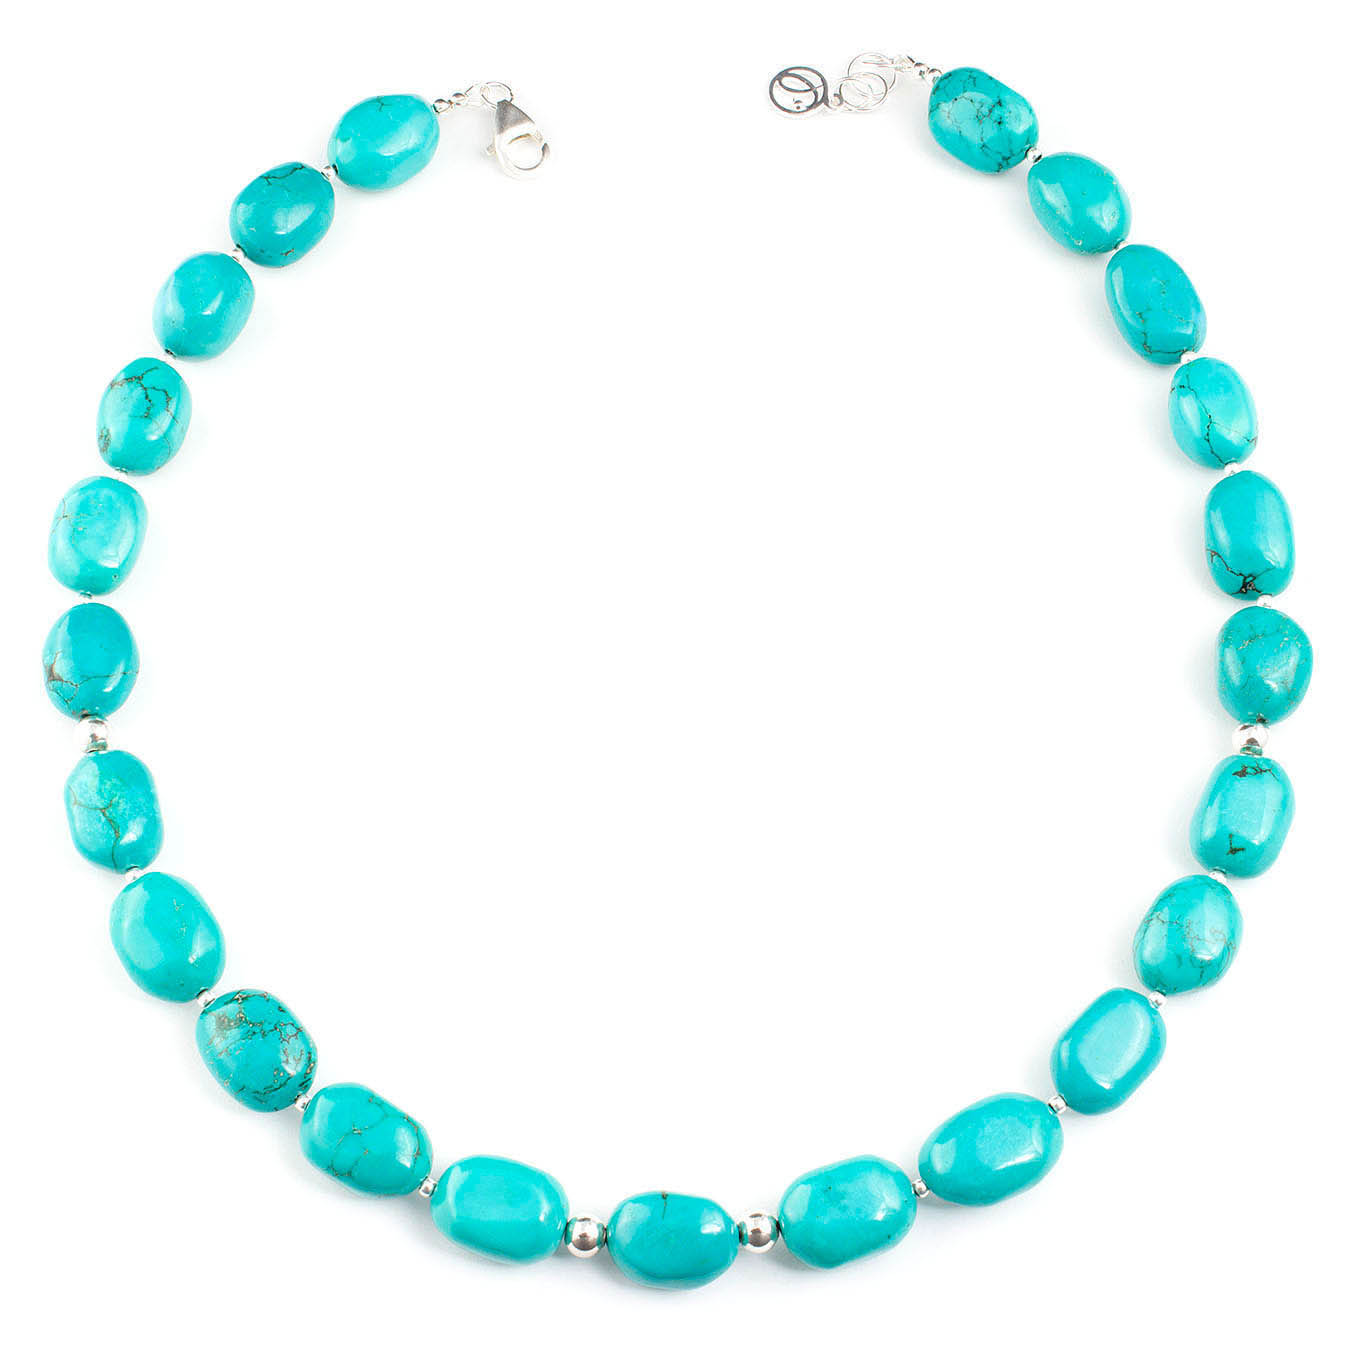 Handmade birthstone necklace made with turquoise and 925 silver beads